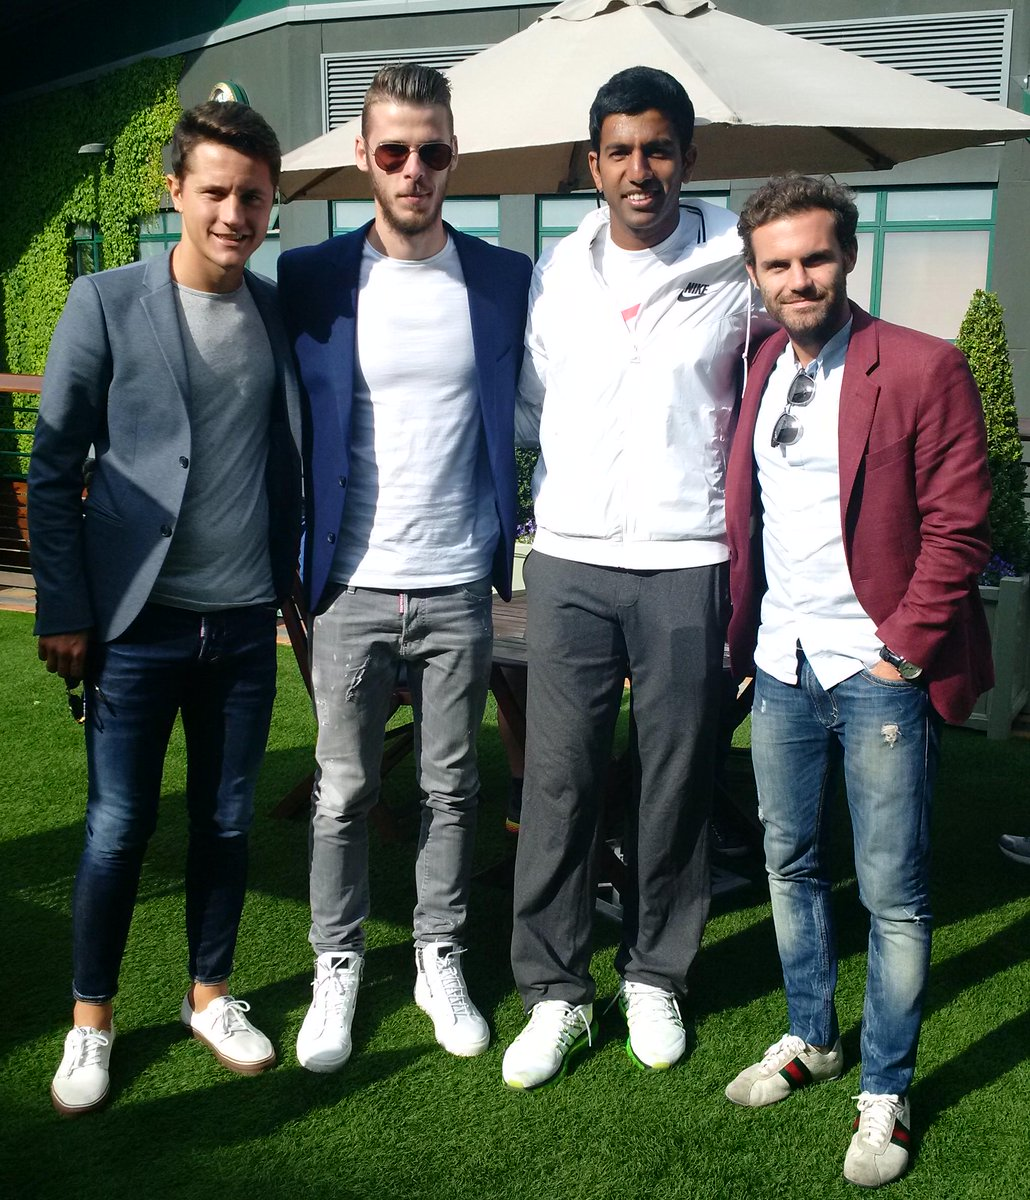 Pleasant surprise meeting these guys here in Wimbledon. @juanmata8 @D_DeGea @AnderHerrera  @ManUtd . http://t.co/7V3Oz0E74a